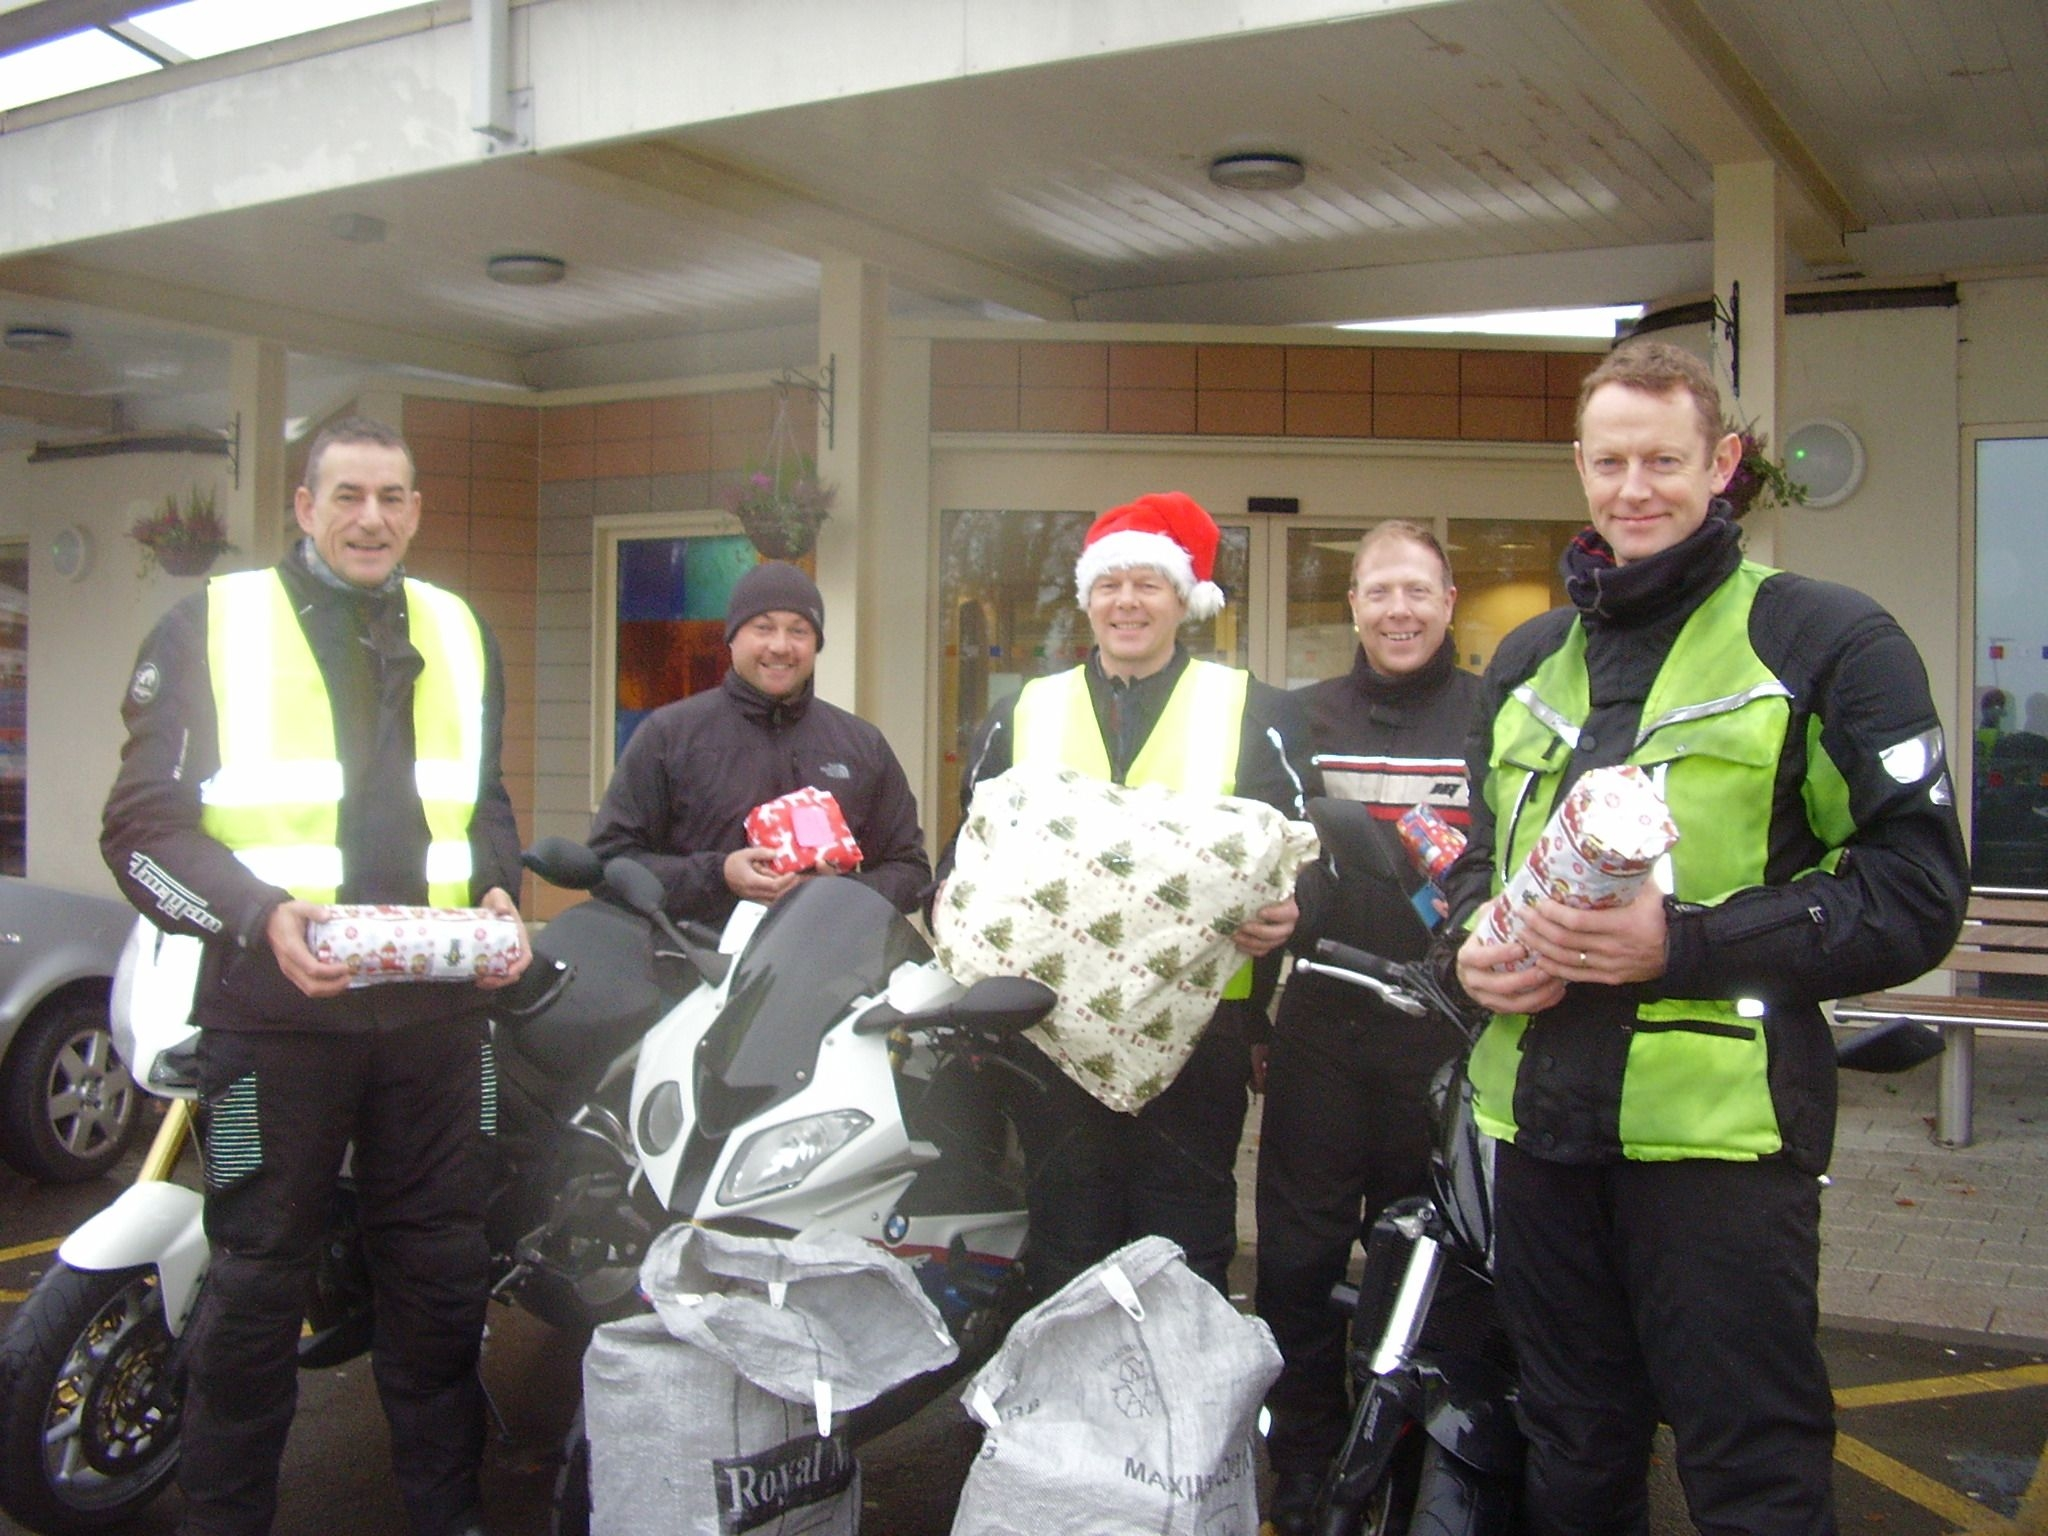 The kind-hearted bikers make their special delivery